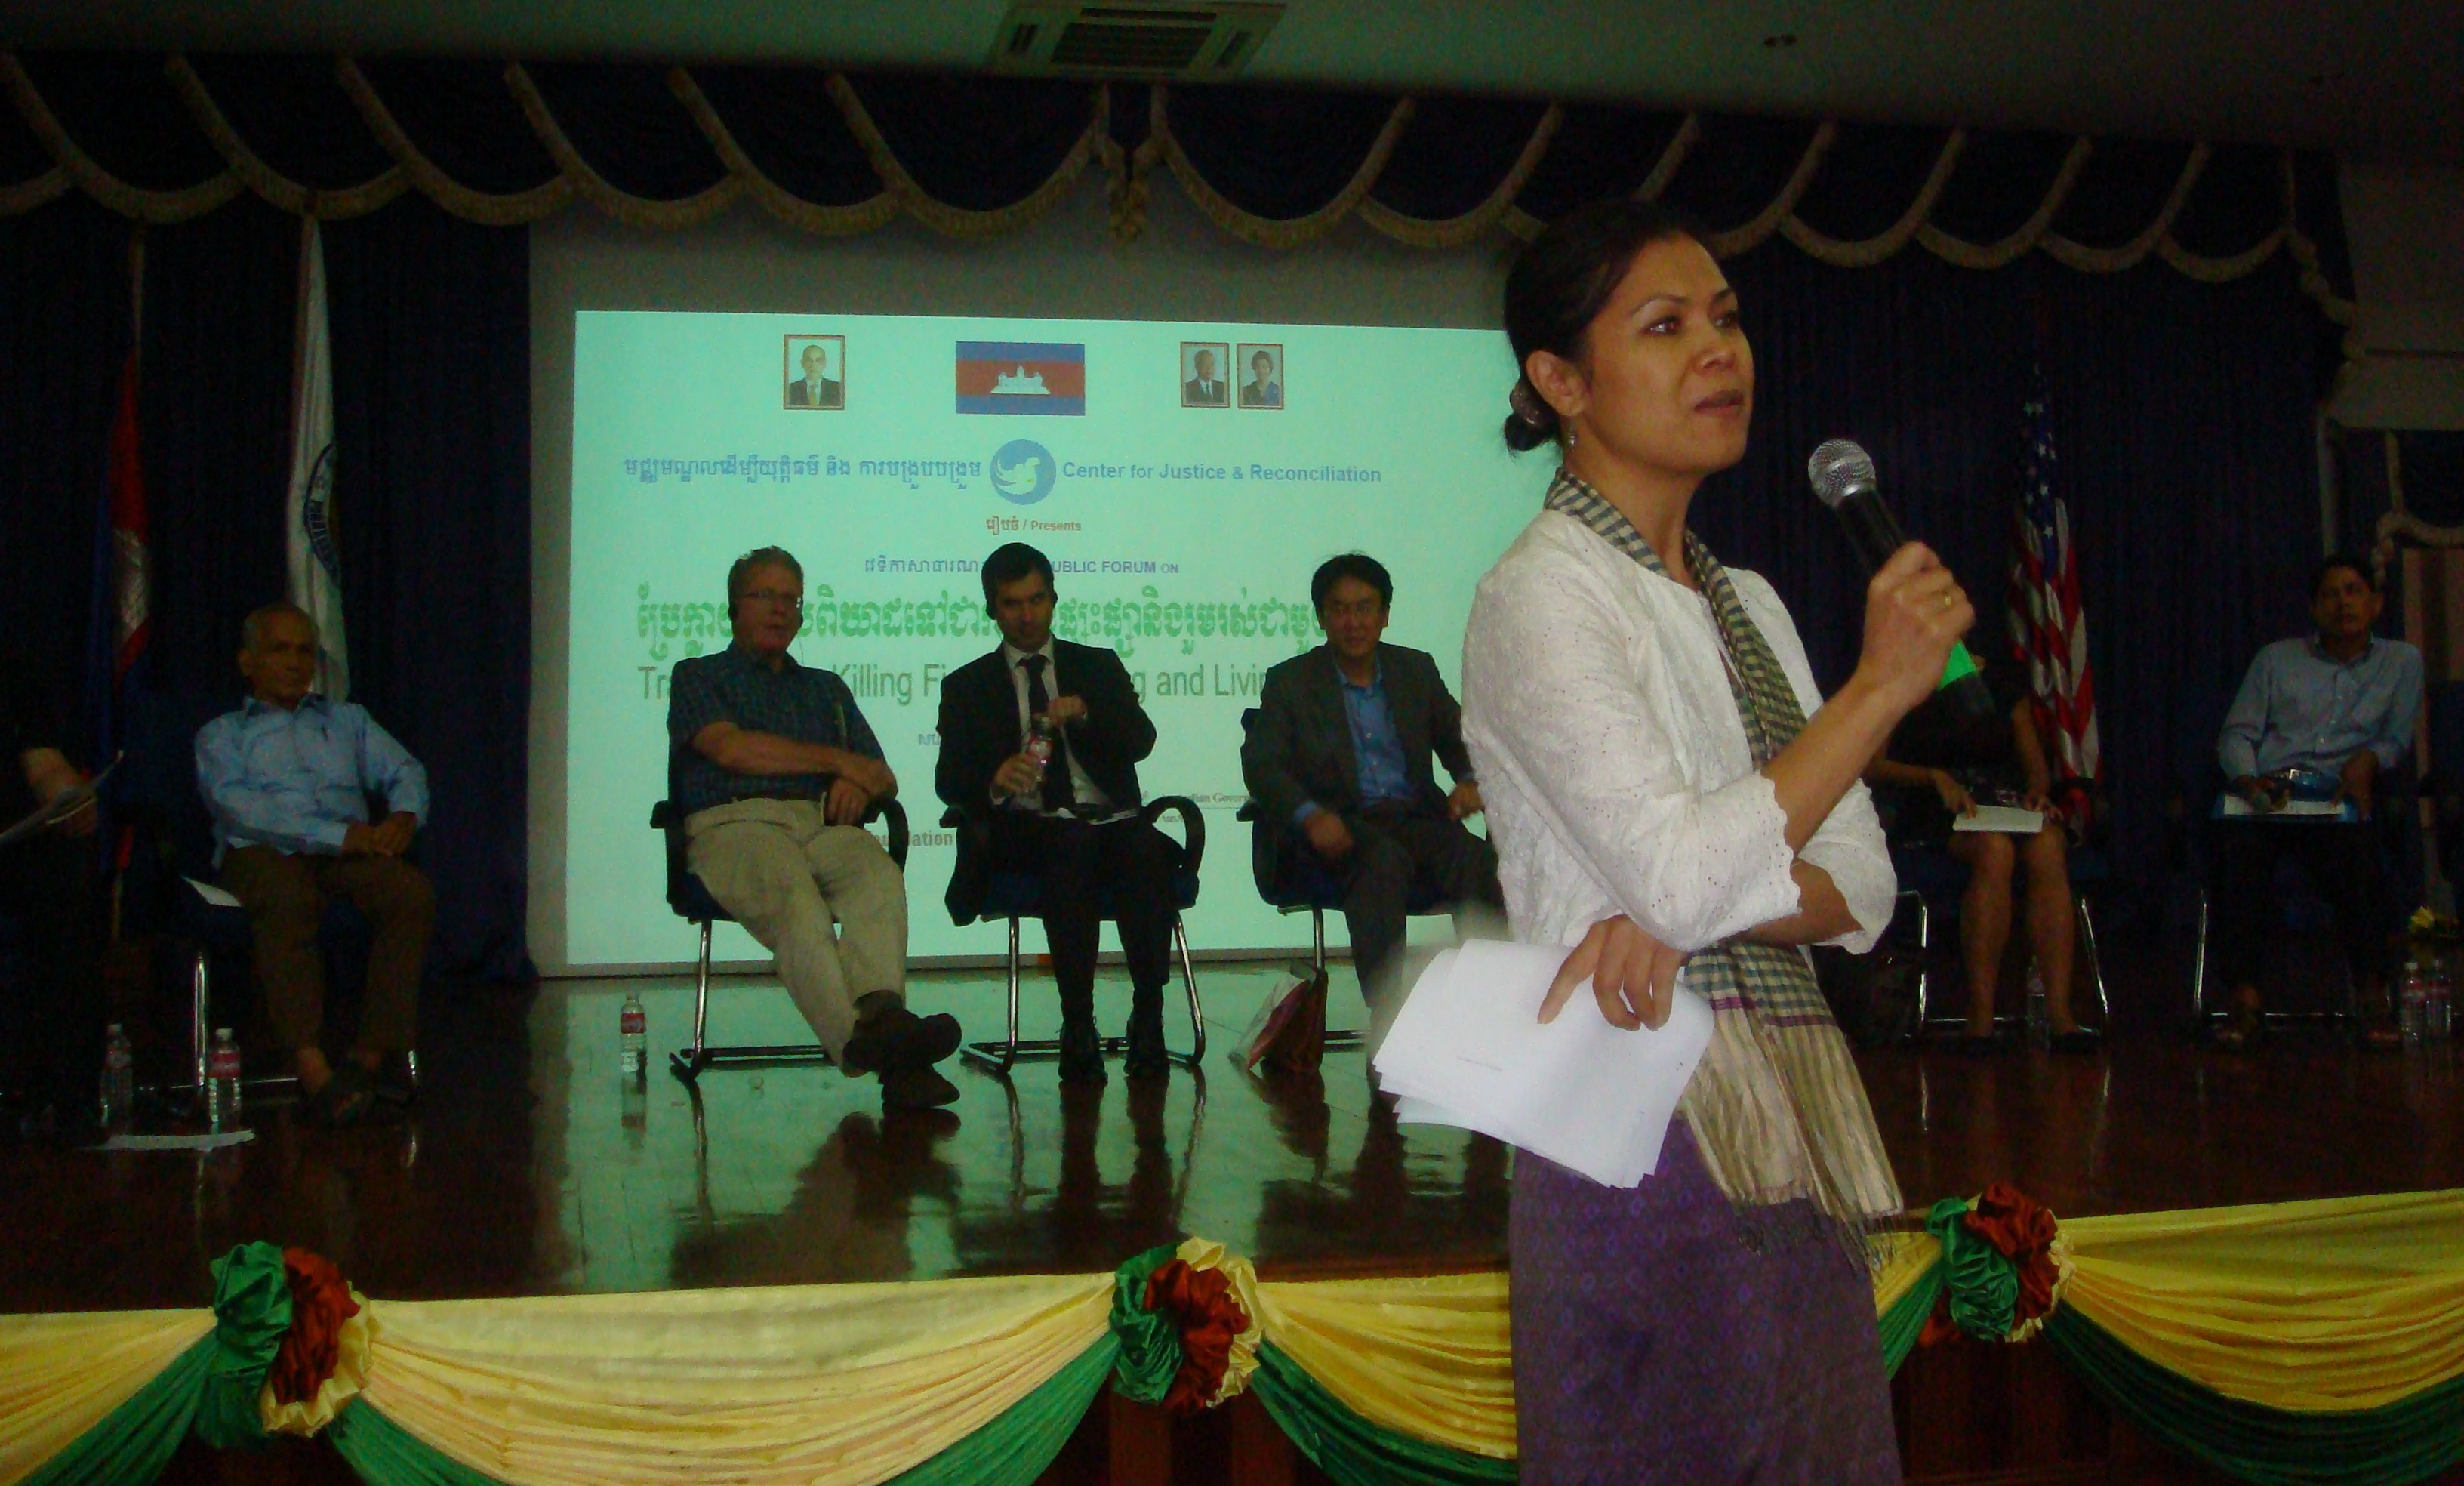 Theary Seng moderating the dialogue at the CJR public forum, 23 July 2010